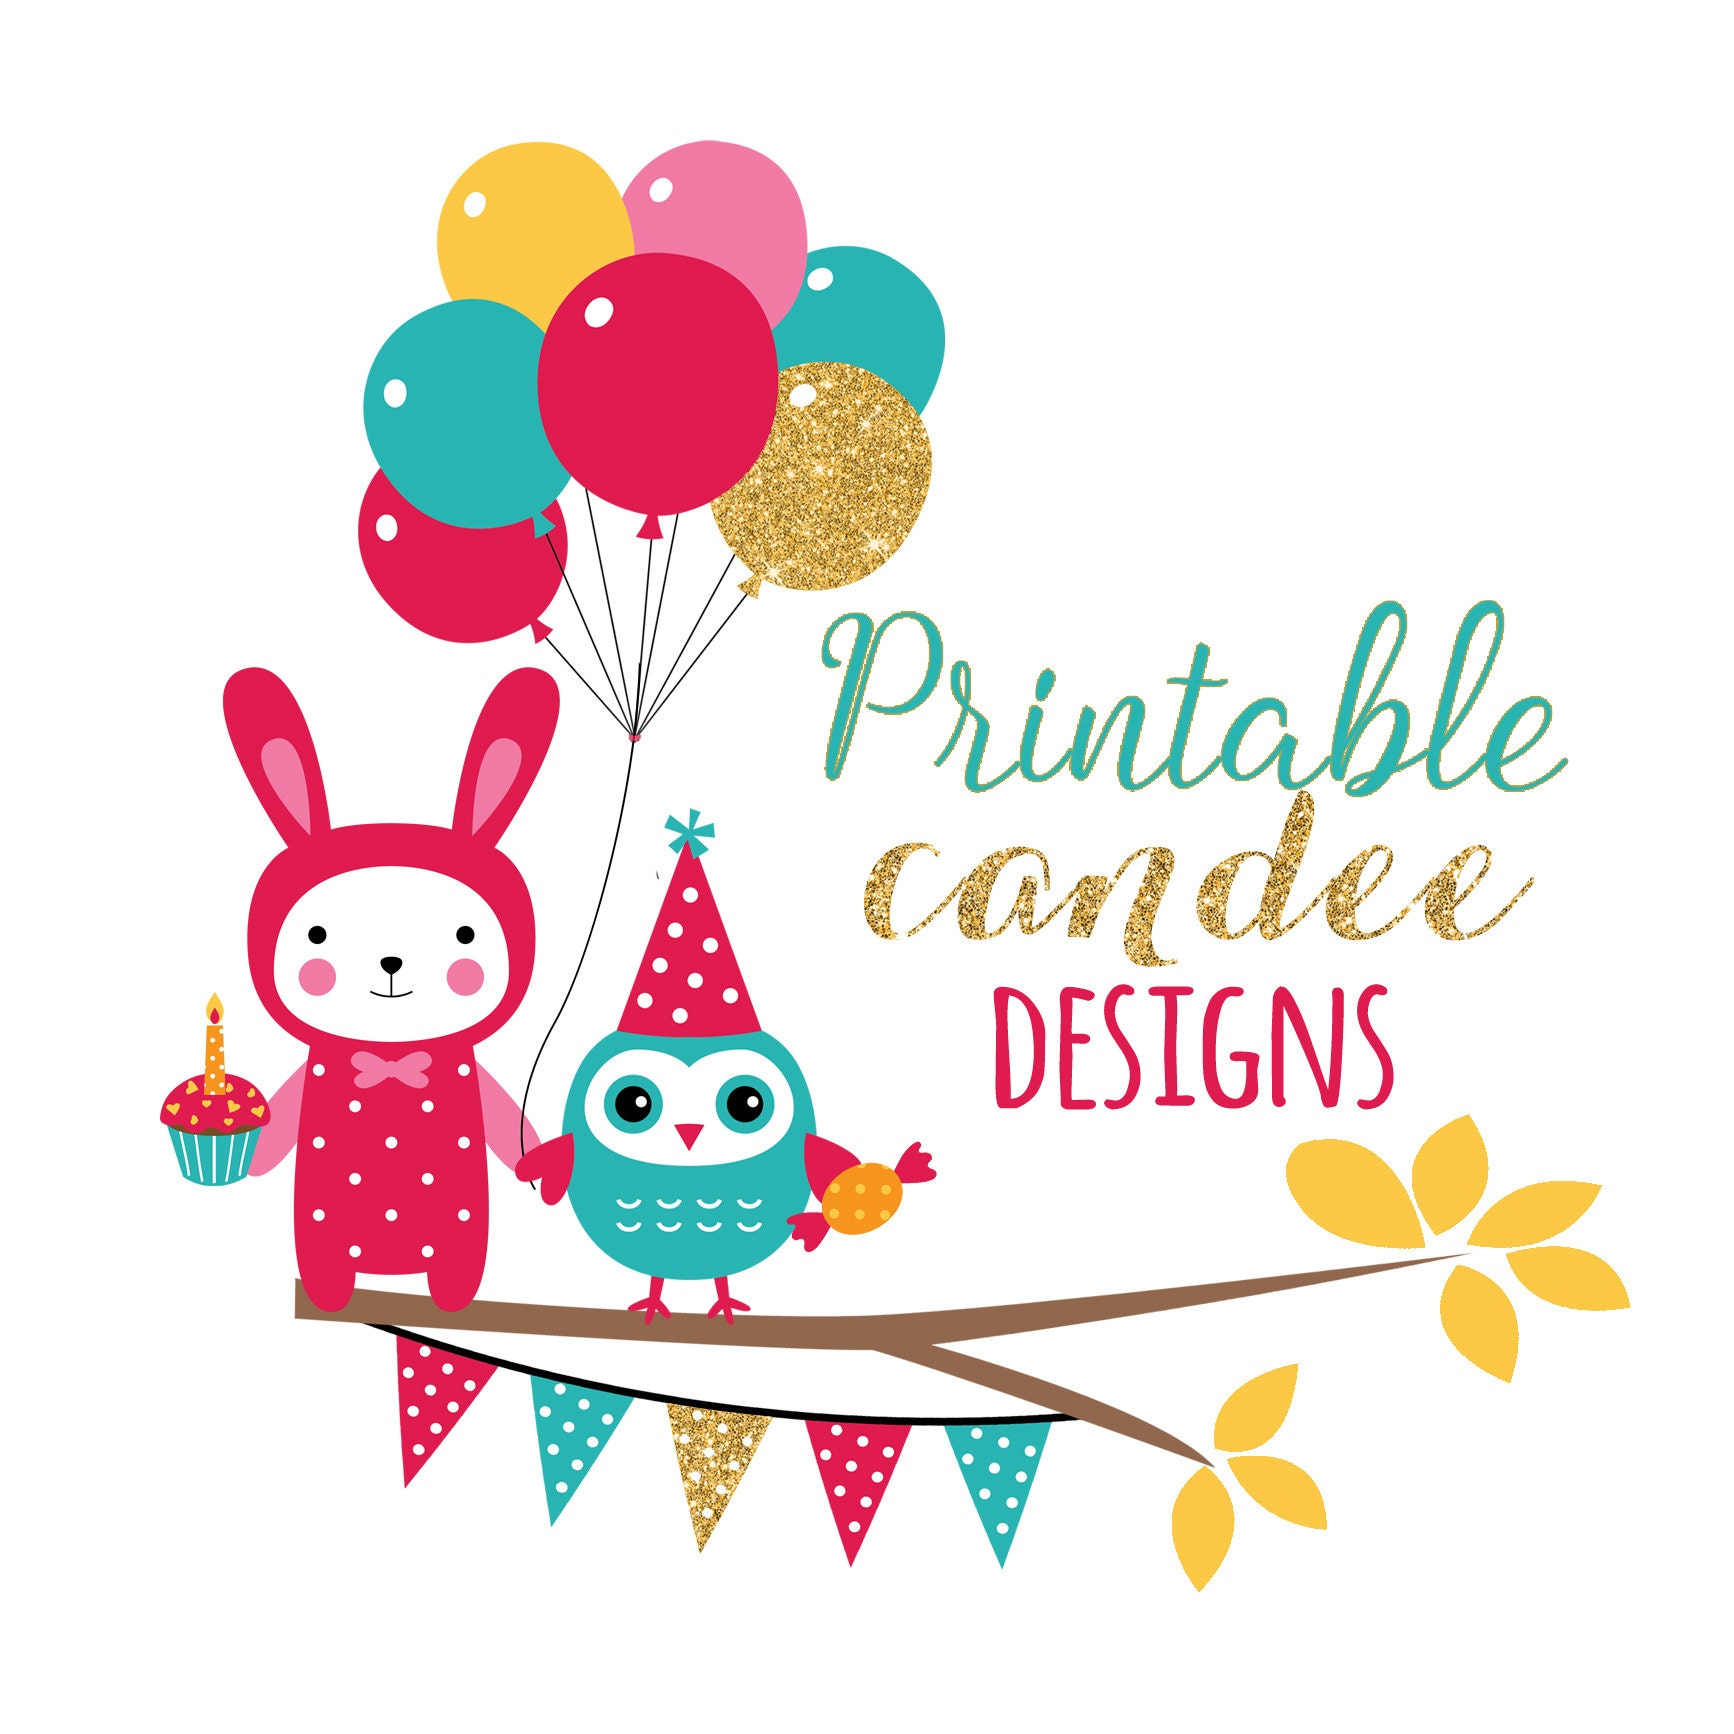 printable candee designs by printablecandee on etsy